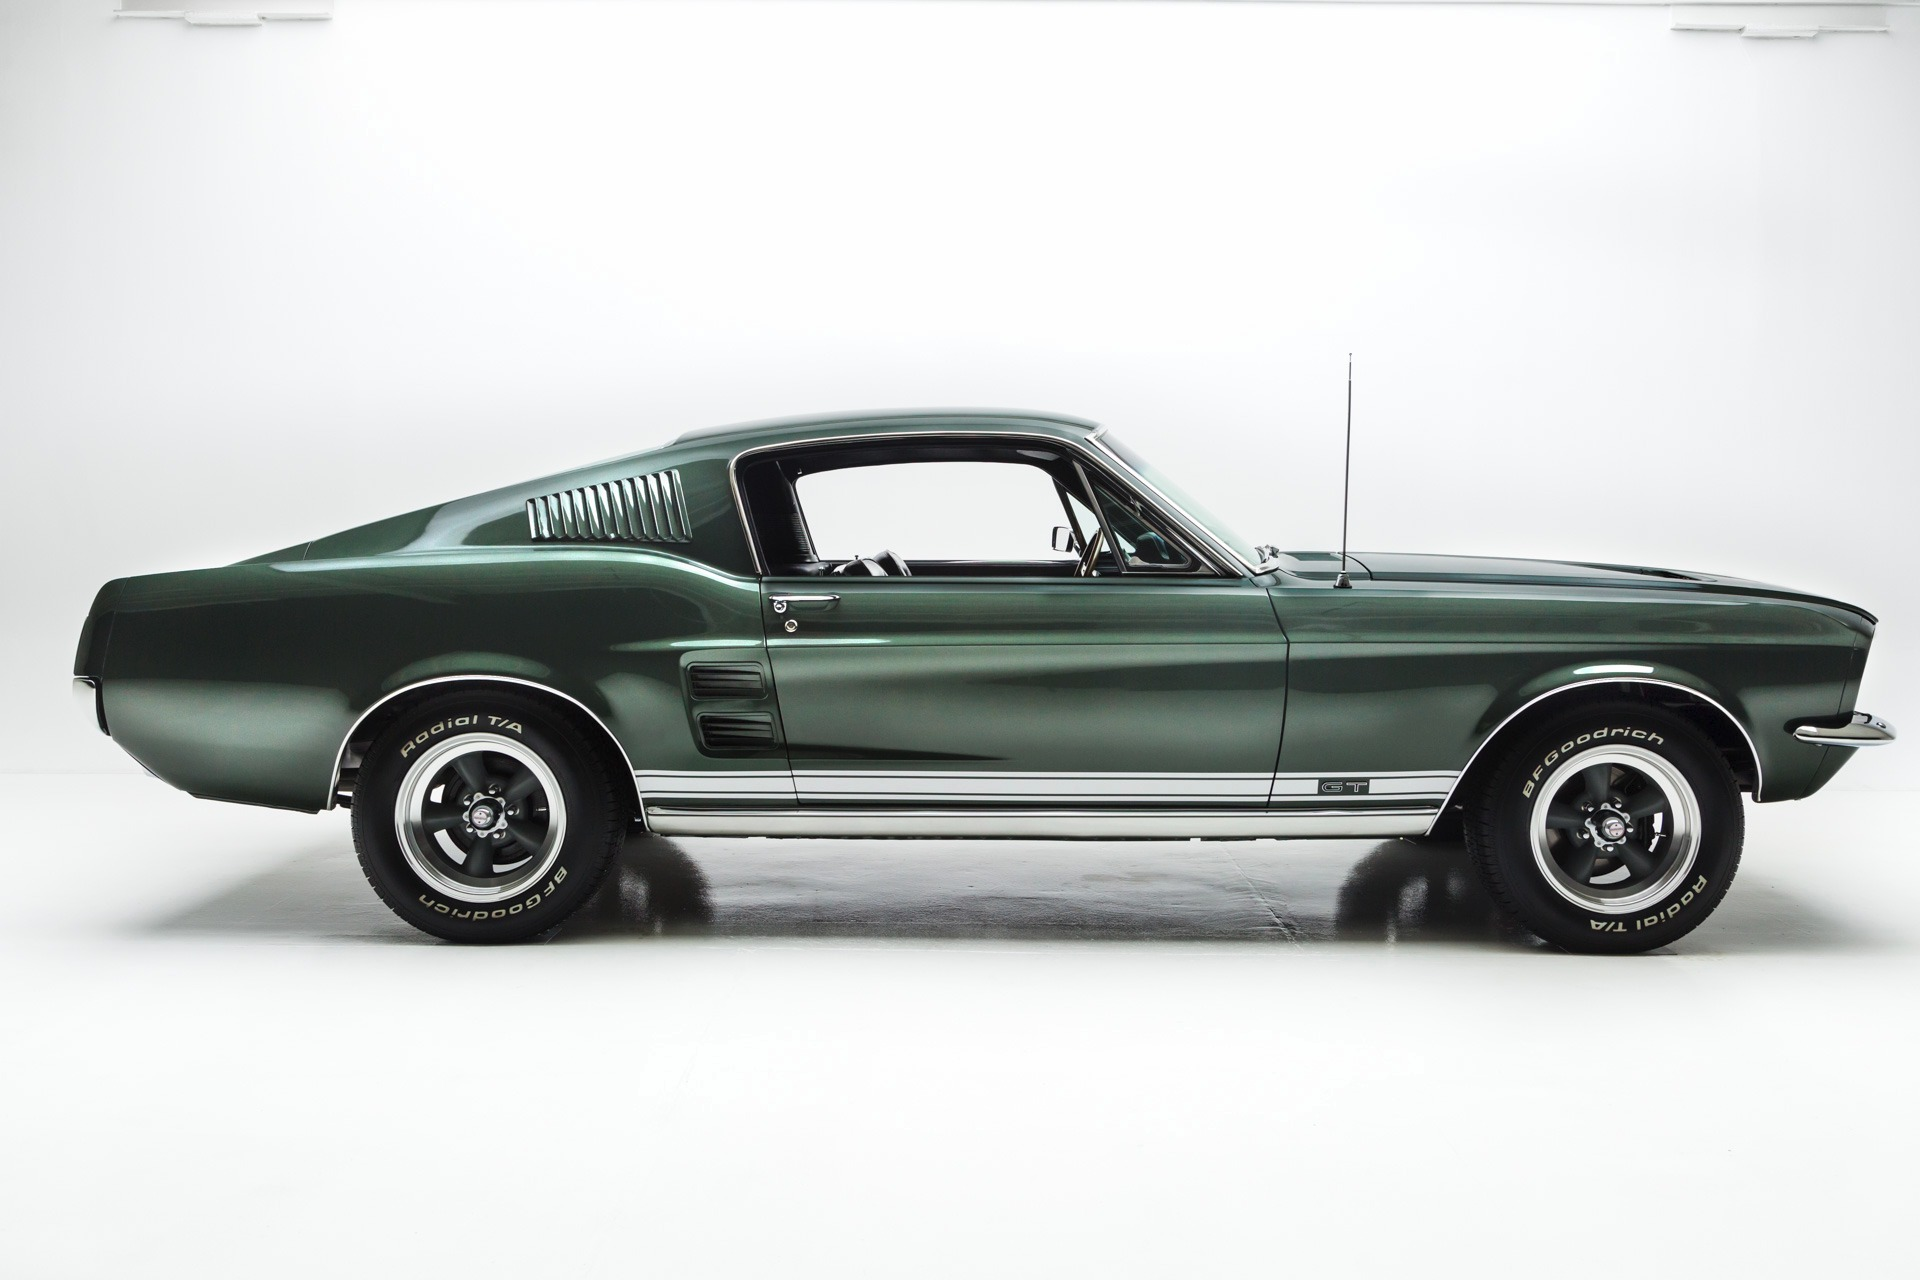 1967 Ford Mustang GT HiPo 289 4-Speed - American Dream ...